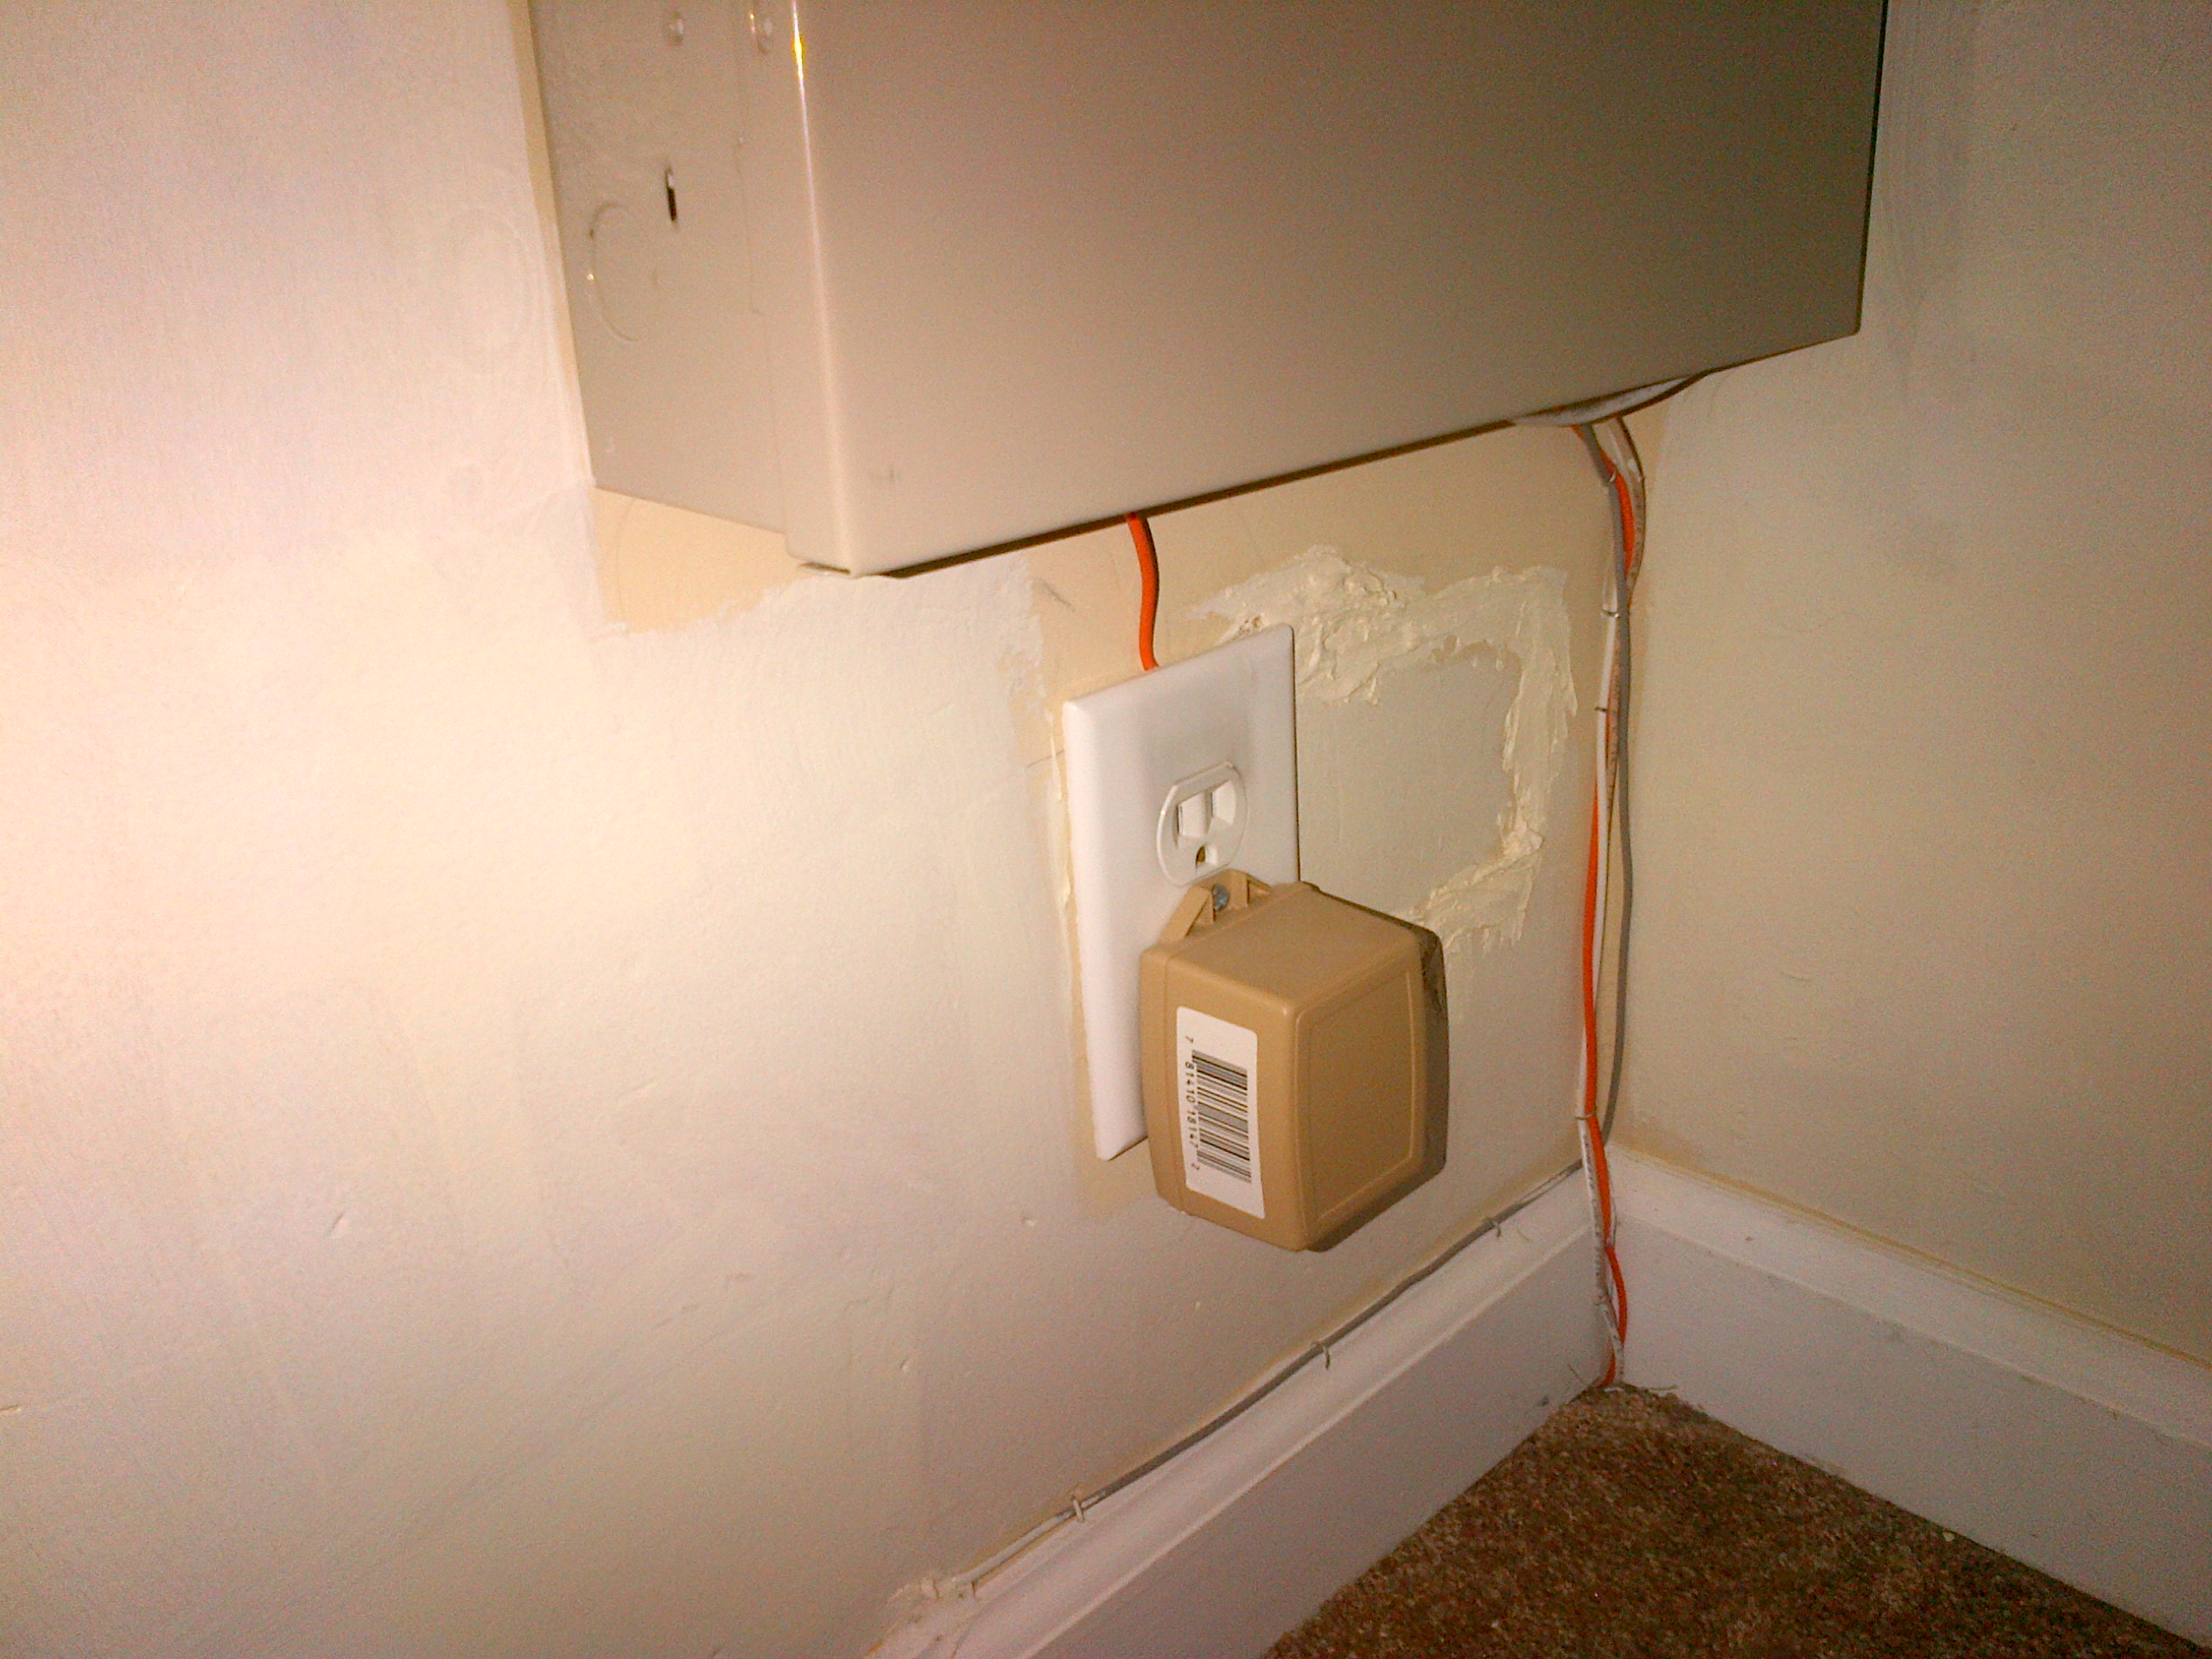 Can i add a light switch to a hardwired wall sconce with a onoff outlet that is under the sconce alarm is currenty plugged in amipublicfo Image collections